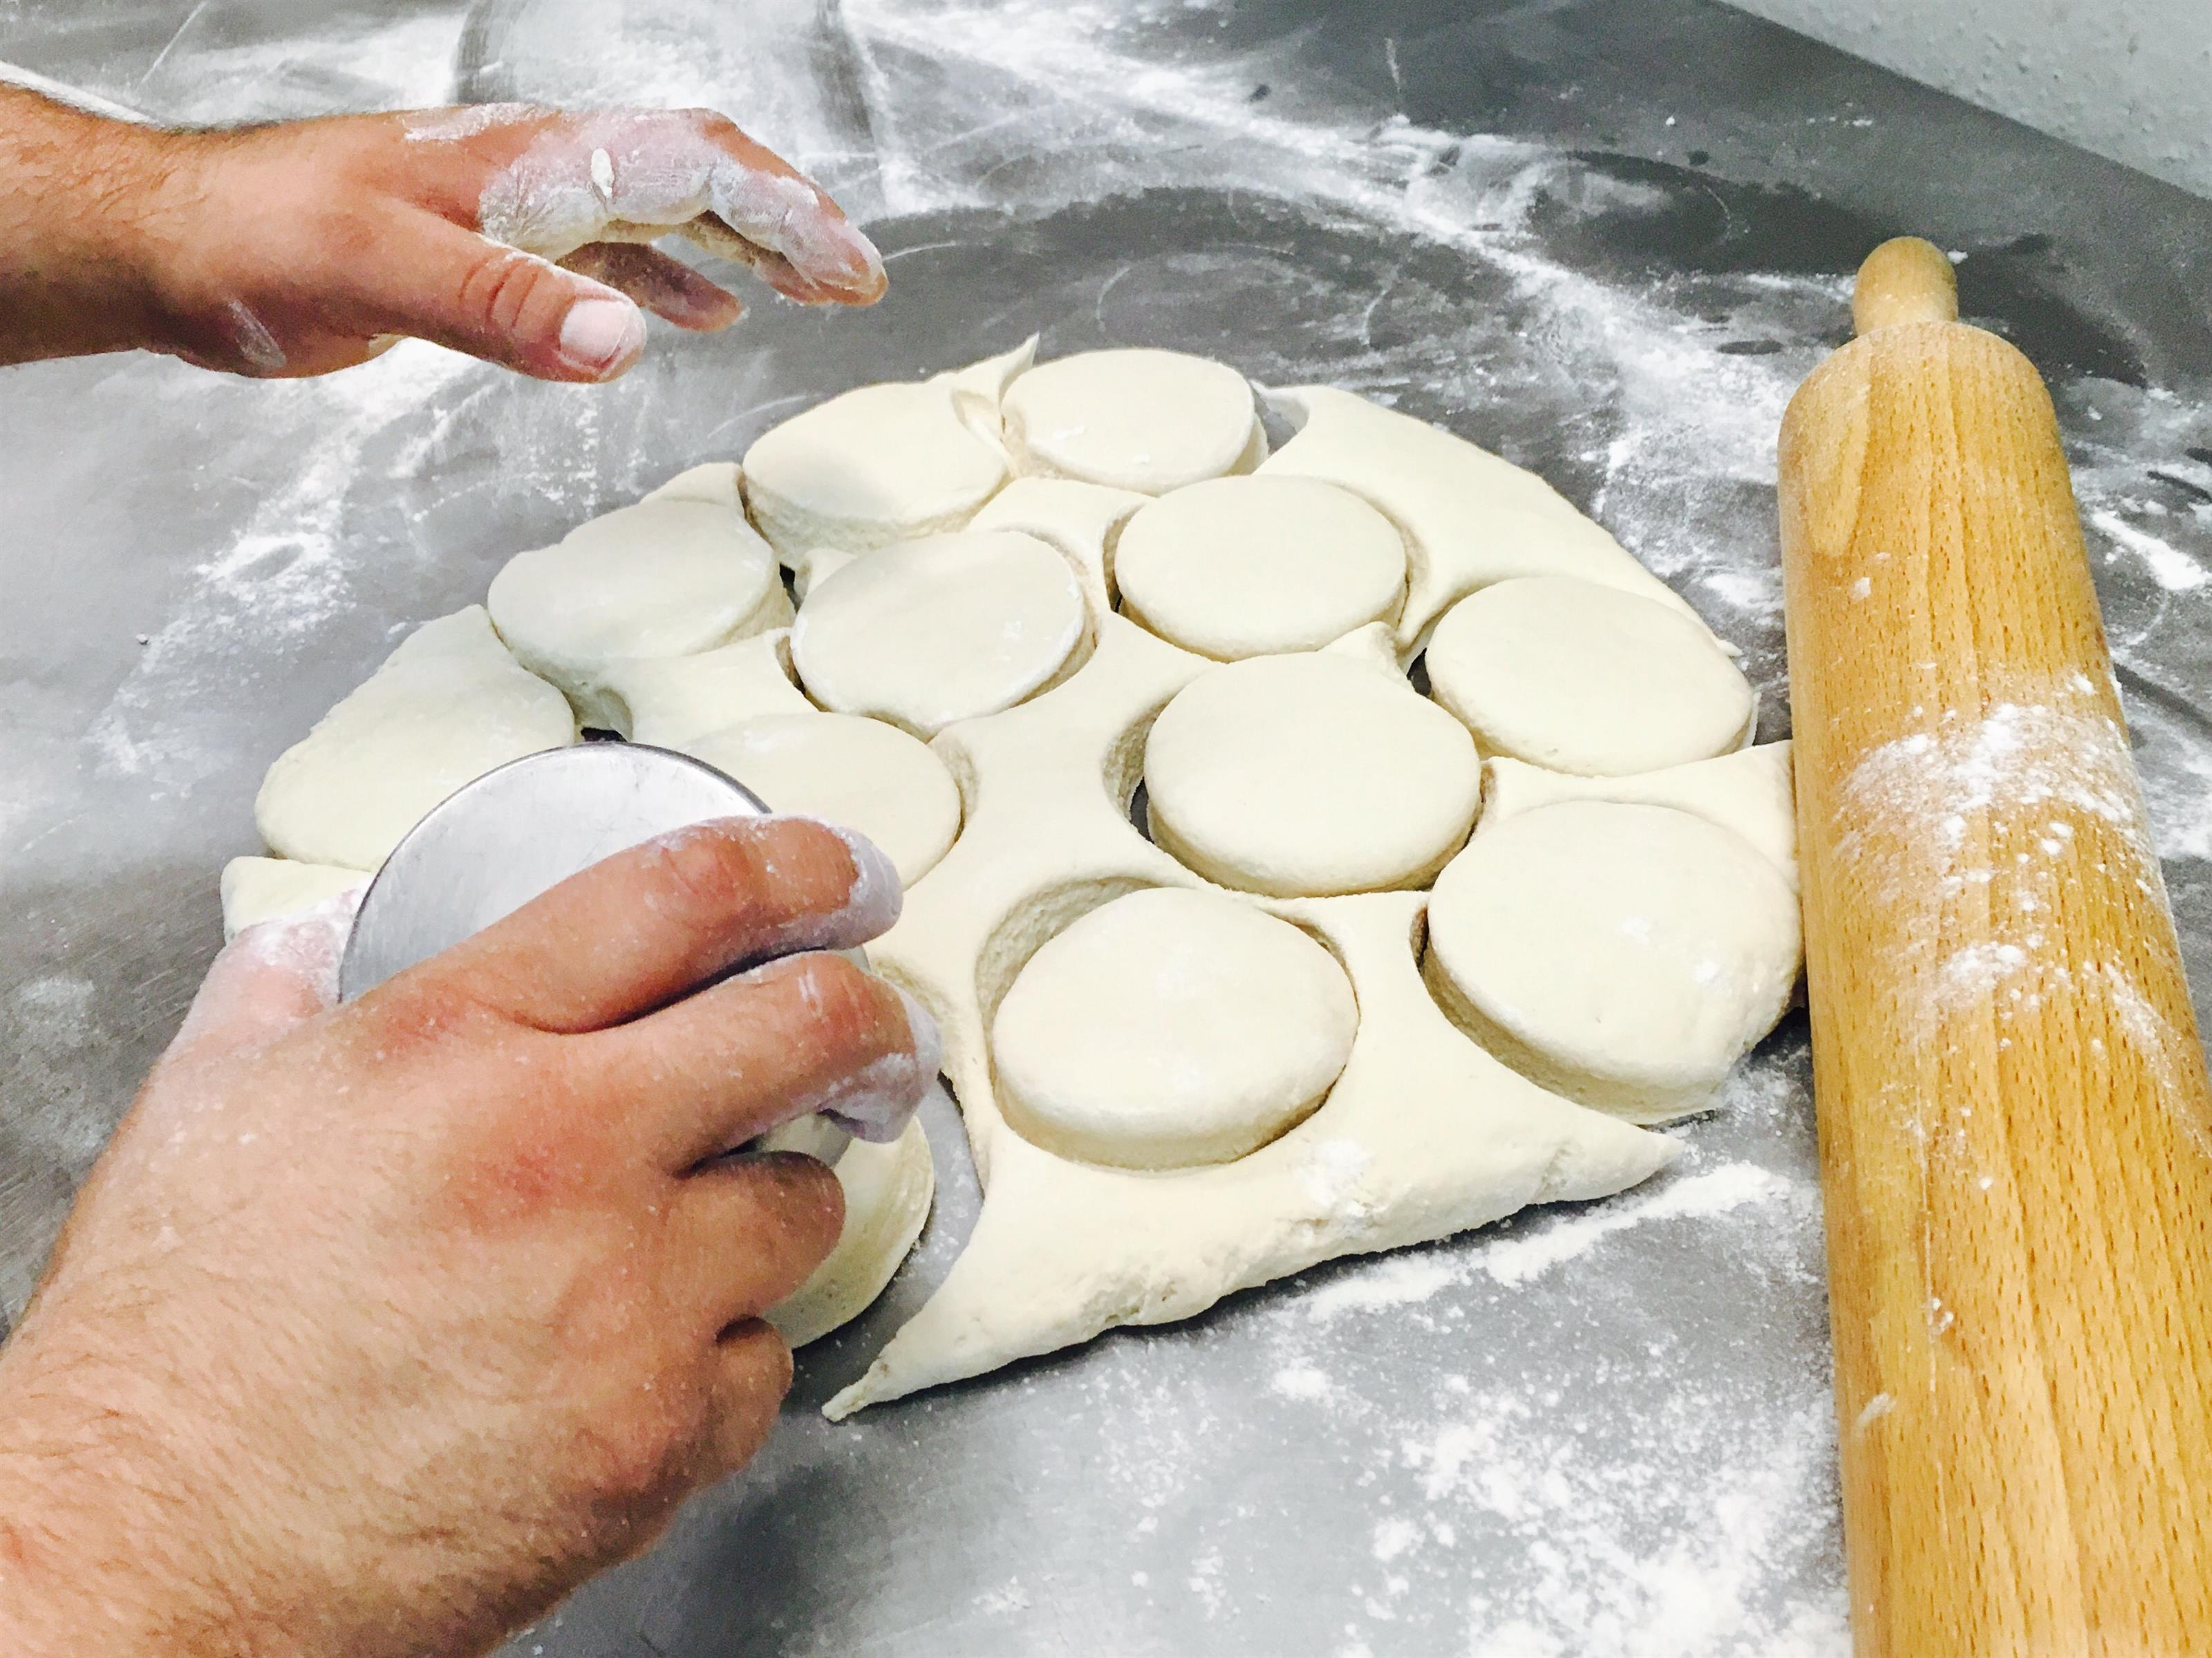 A chef cutting the dough with a cup